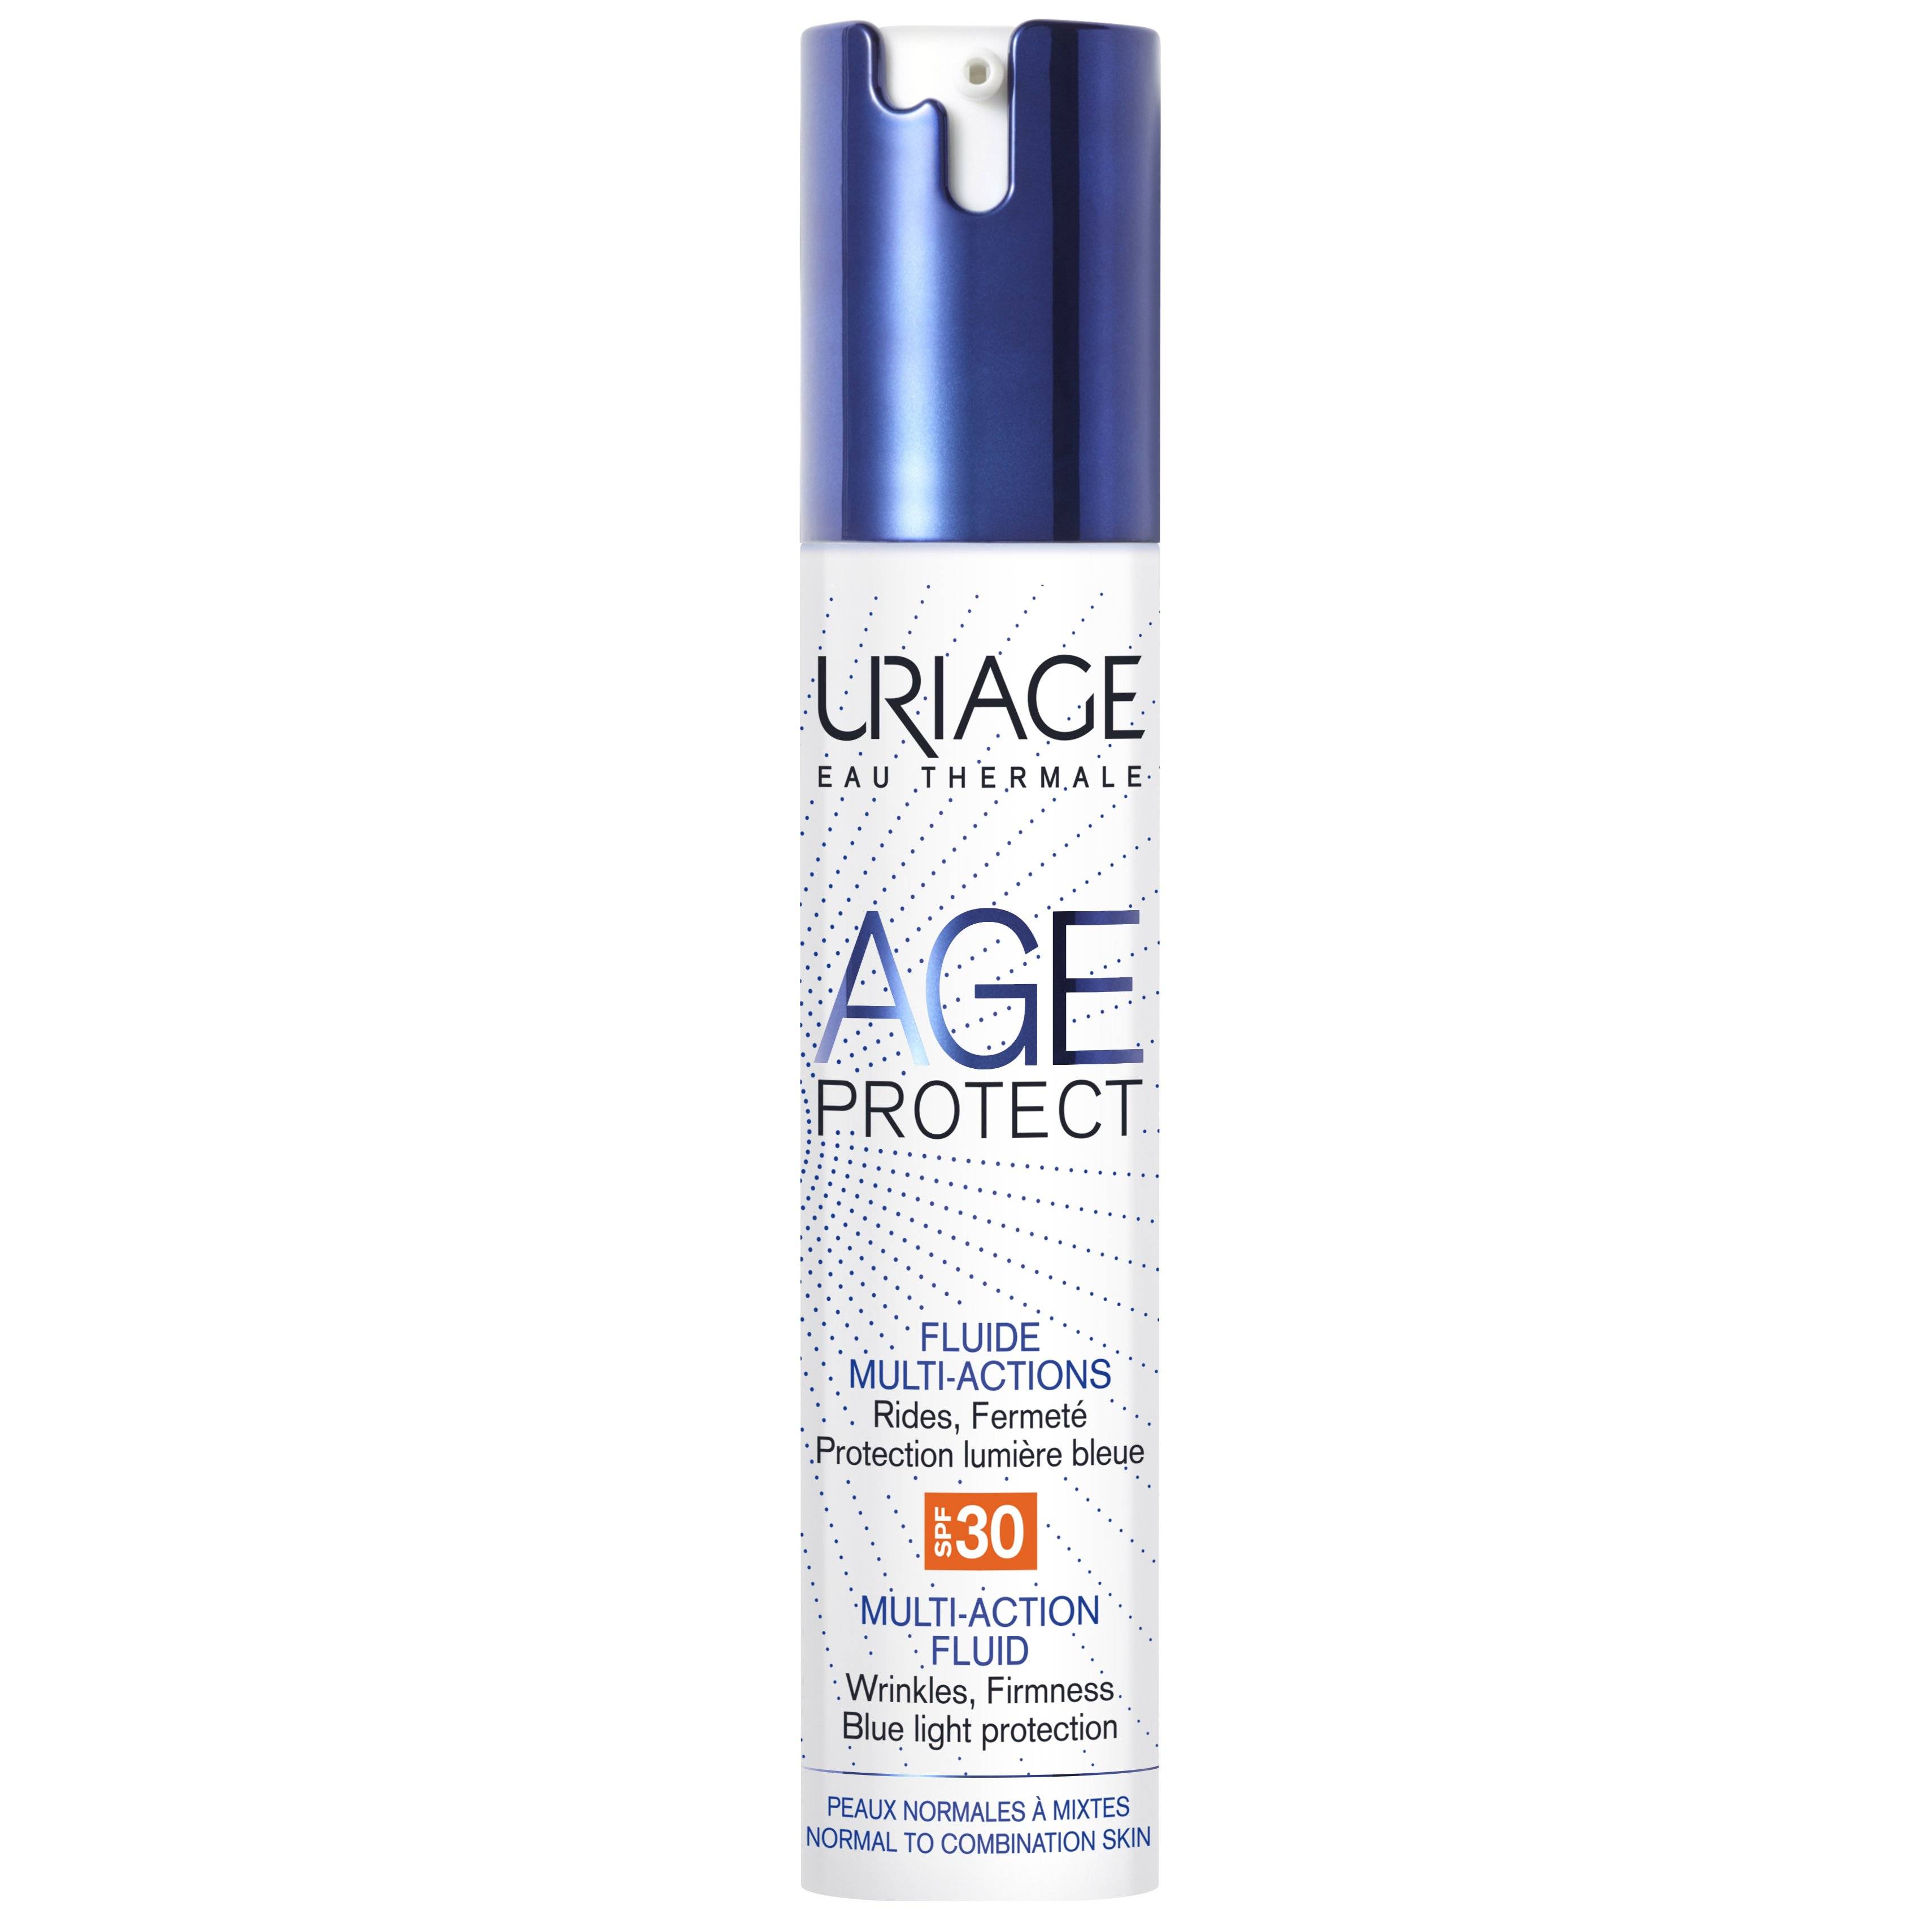 Uriage Eau Thermale Age Protect Multi-Action Fluid Spf30 Αντιγηραντική Λεπτόρρευστη Φροντίδα, Κανονικές Μικτές Επιδερμίδες 40ml